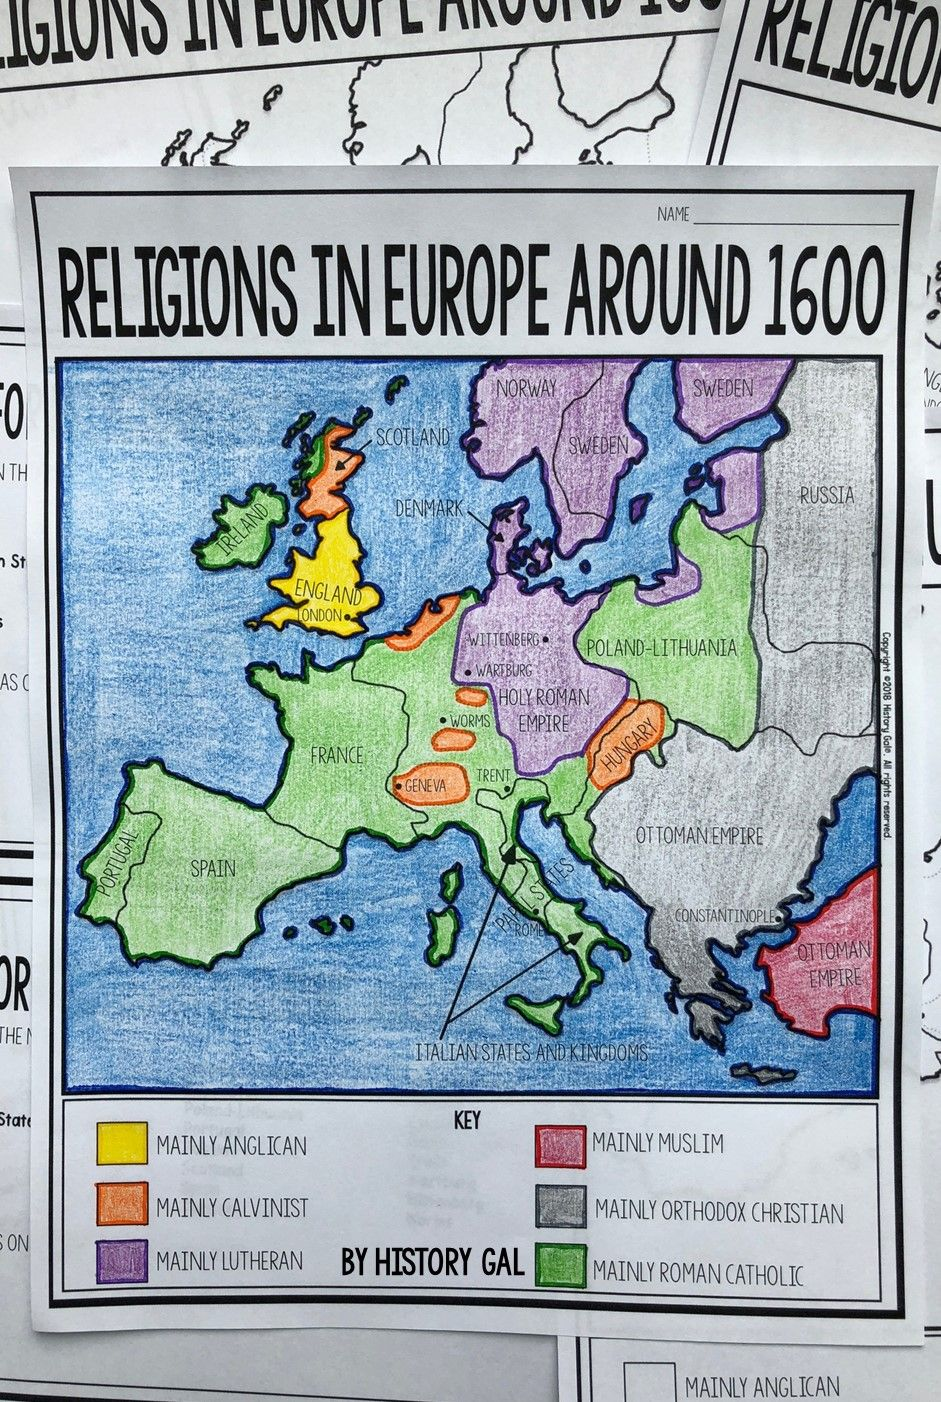 the reformation religious map of europe 1600 Protestant Reformation Map Activity Protestant Reformation Map